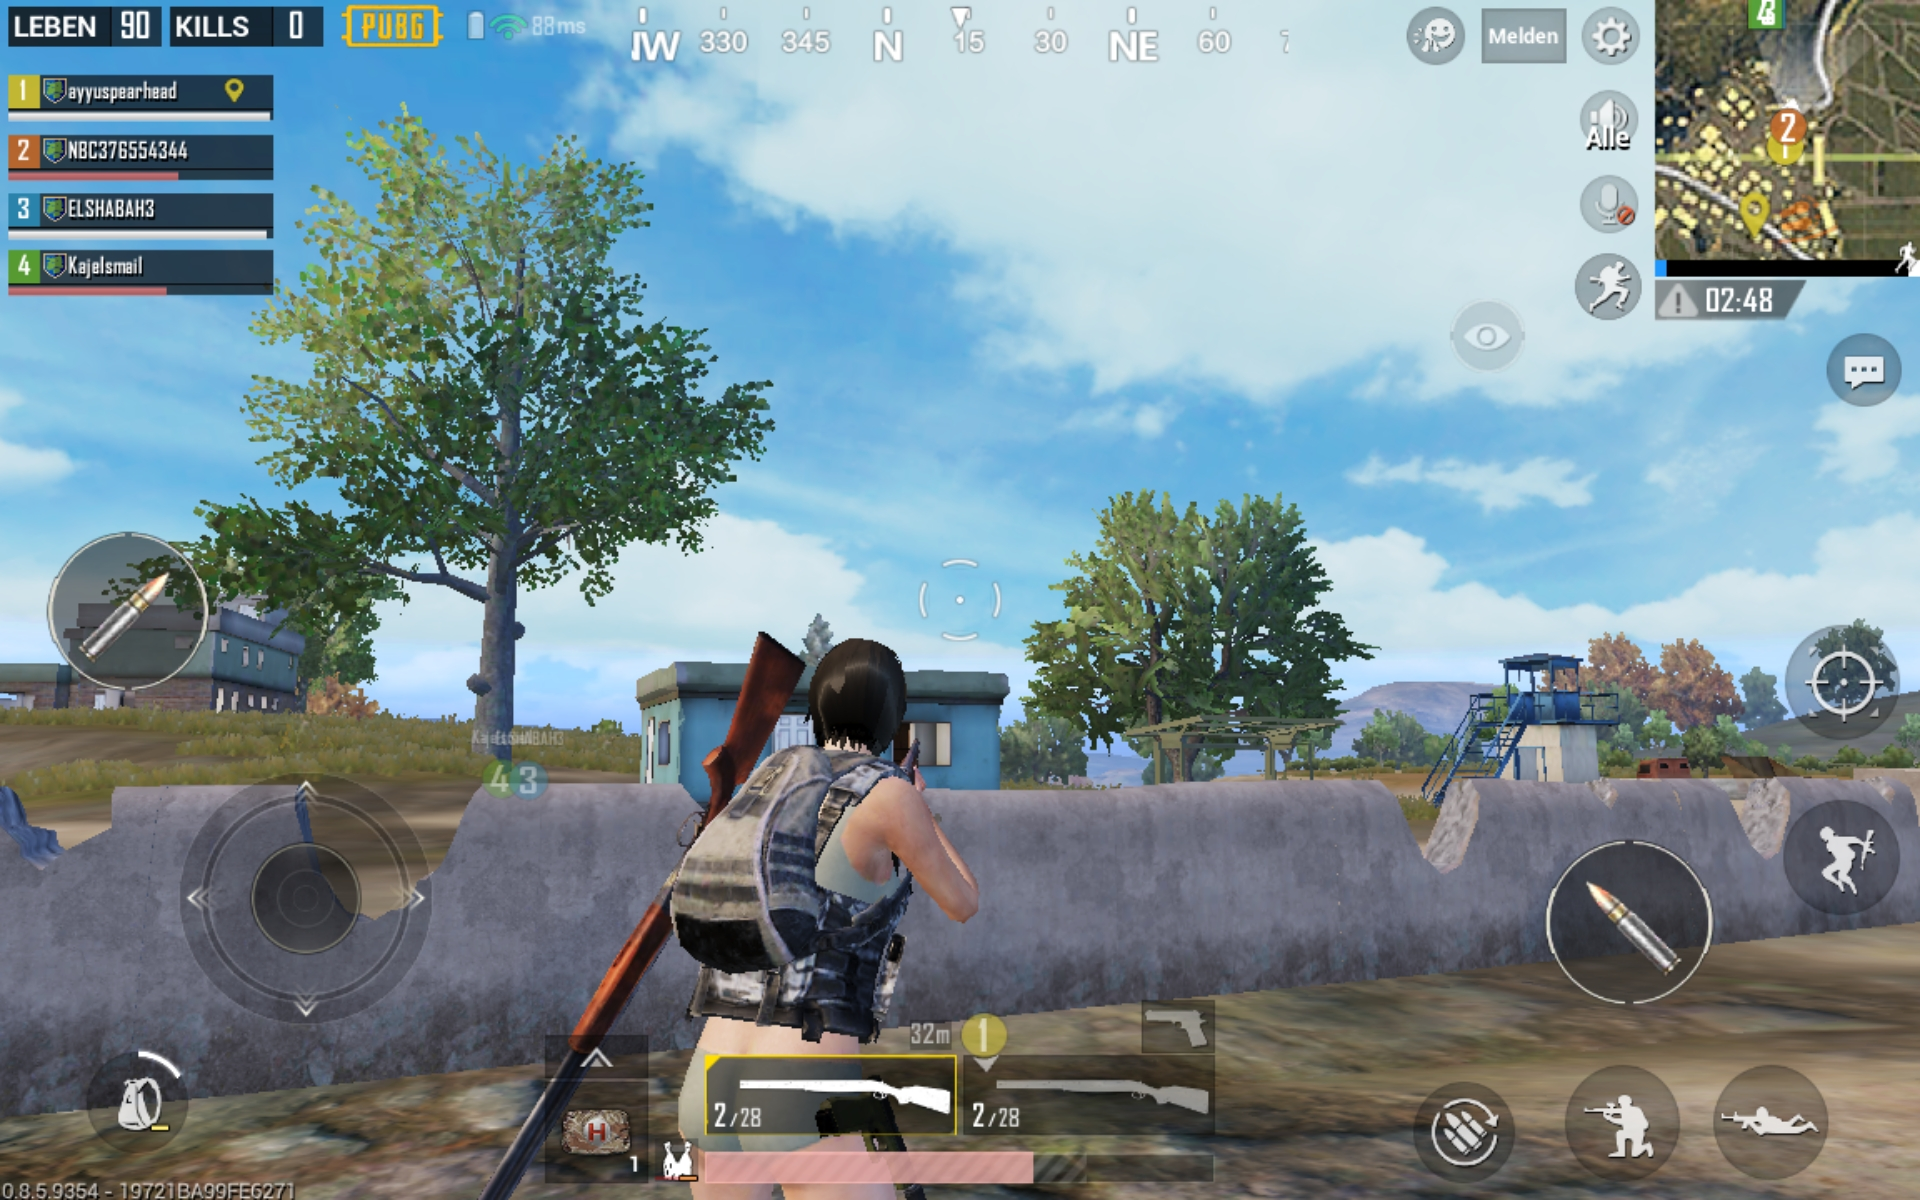 Hdr 60 Fps Pubg Mobile: Samsung Galaxy Tab A 10.5 (SM-T590N) Tablet Review